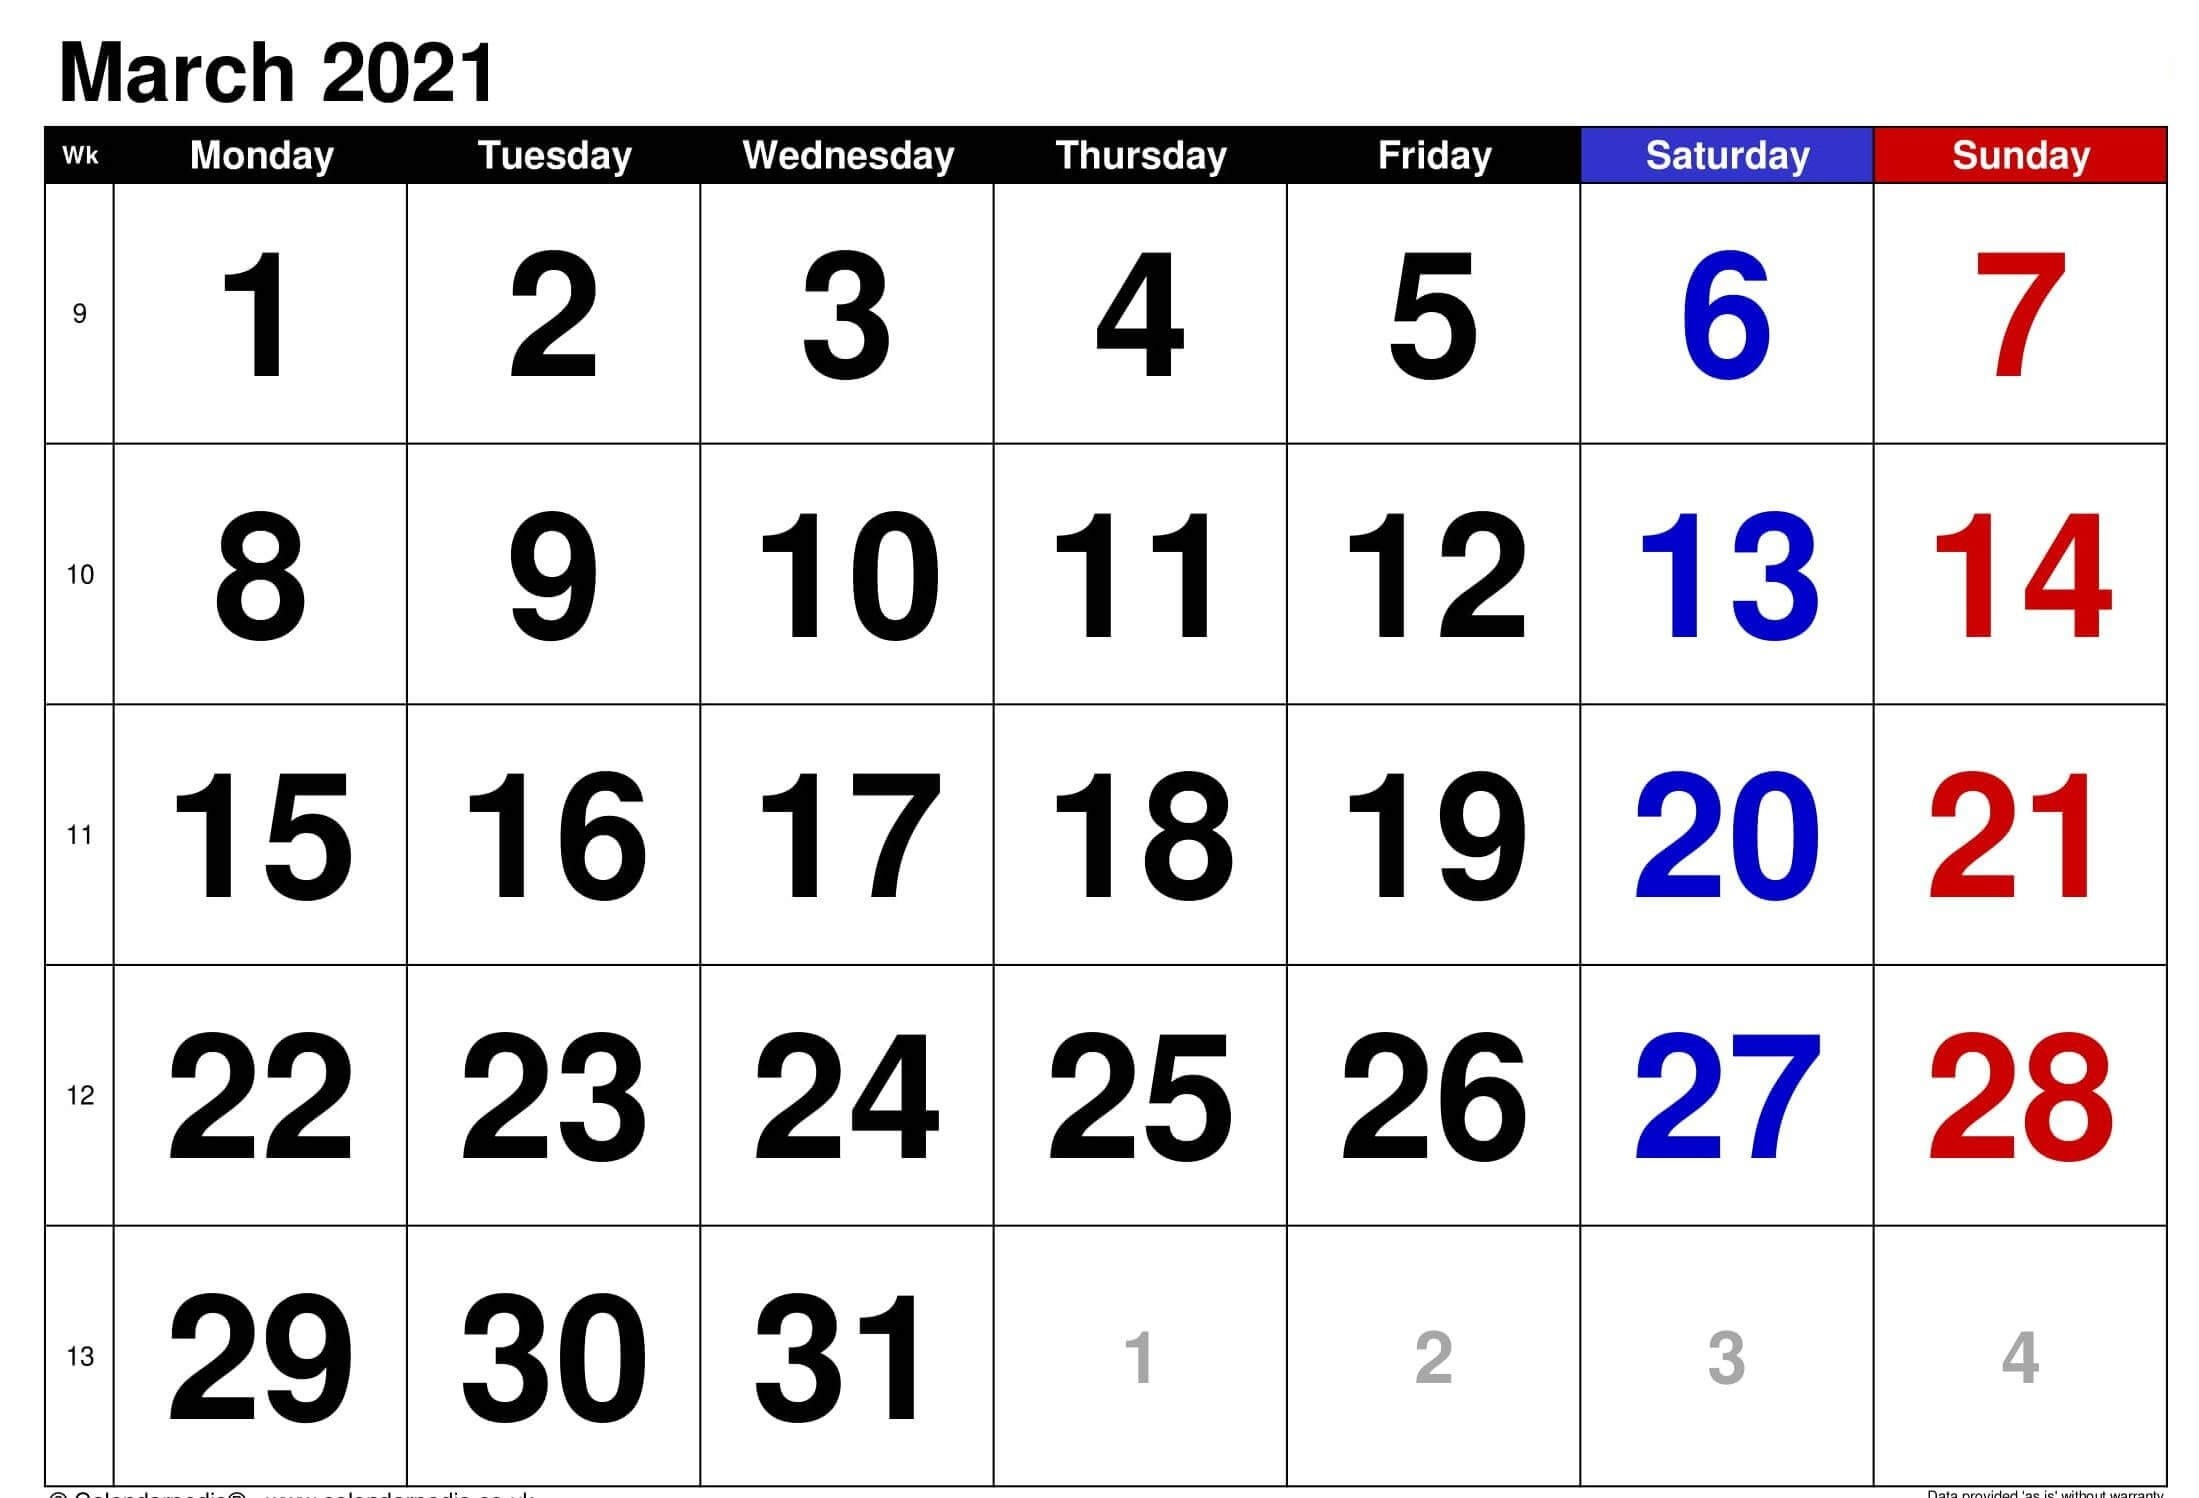 March 2021 Printable Calendar Notes Templates - One Platform For Digital Solutions March 2021 inside Printable Calendar 2021 Monthly With Notes